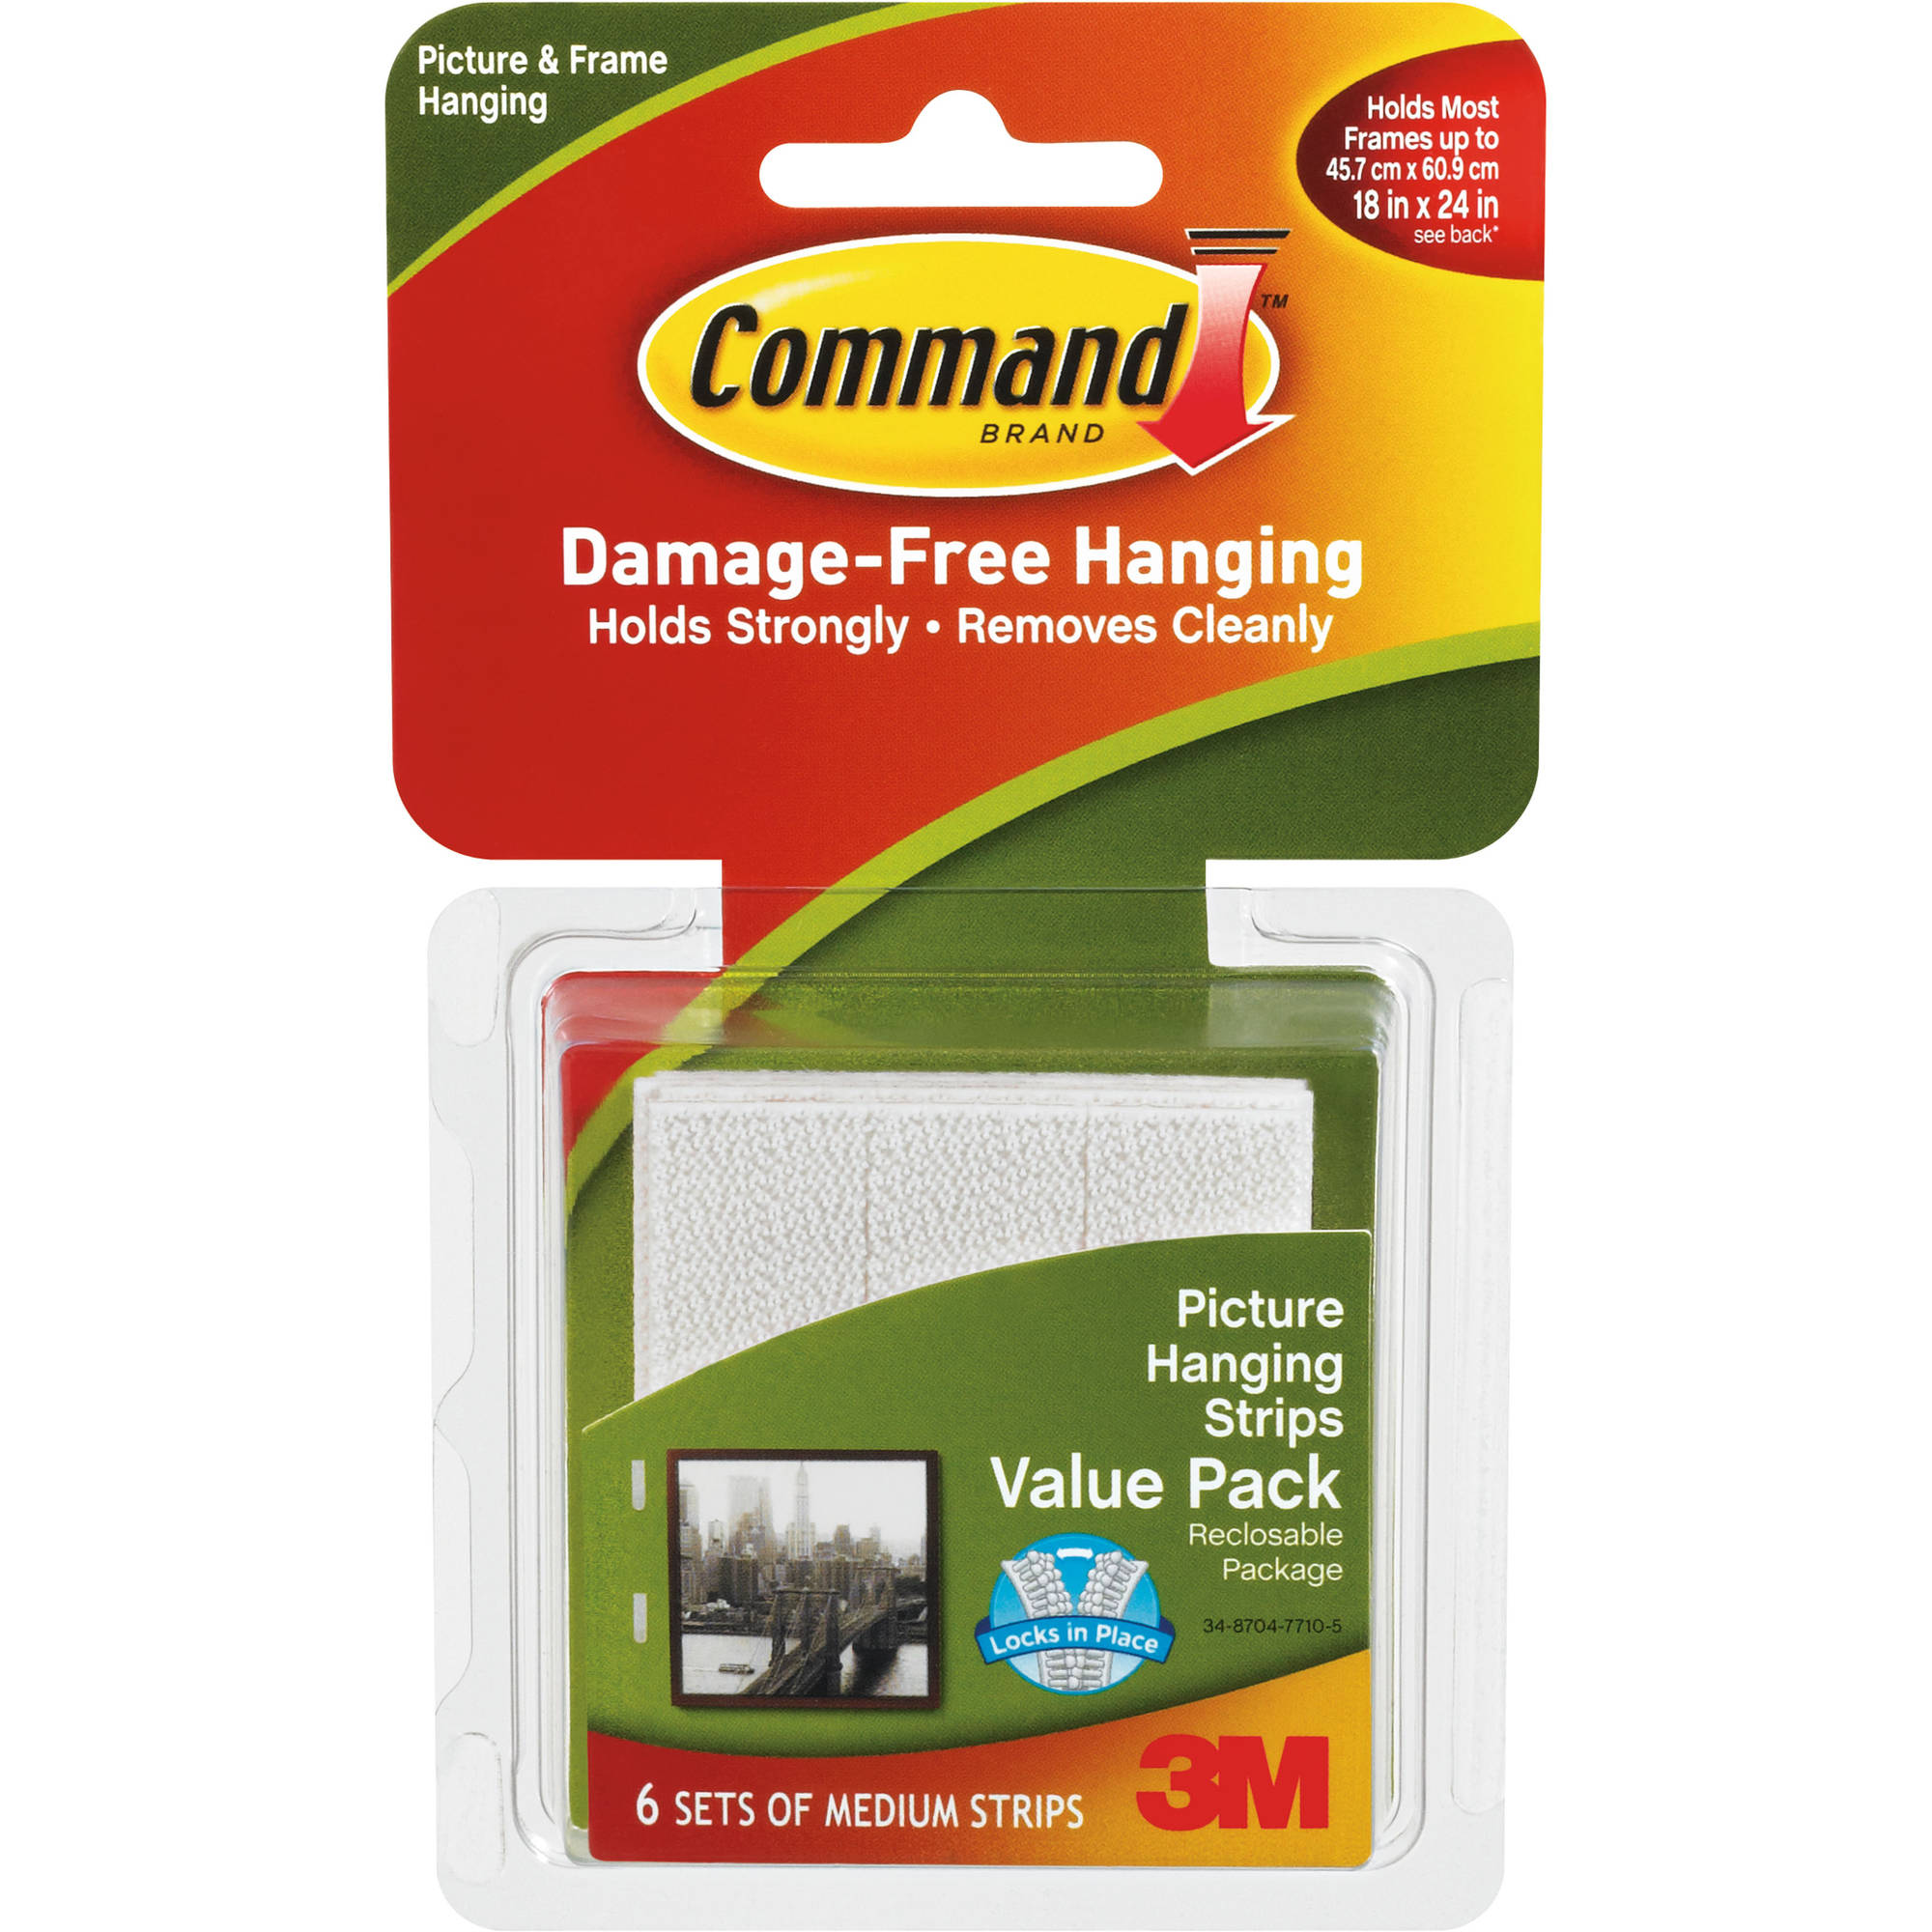 Command Medium Picture Hanging Strips, White, 6 Sets of Strips, 17204ALT